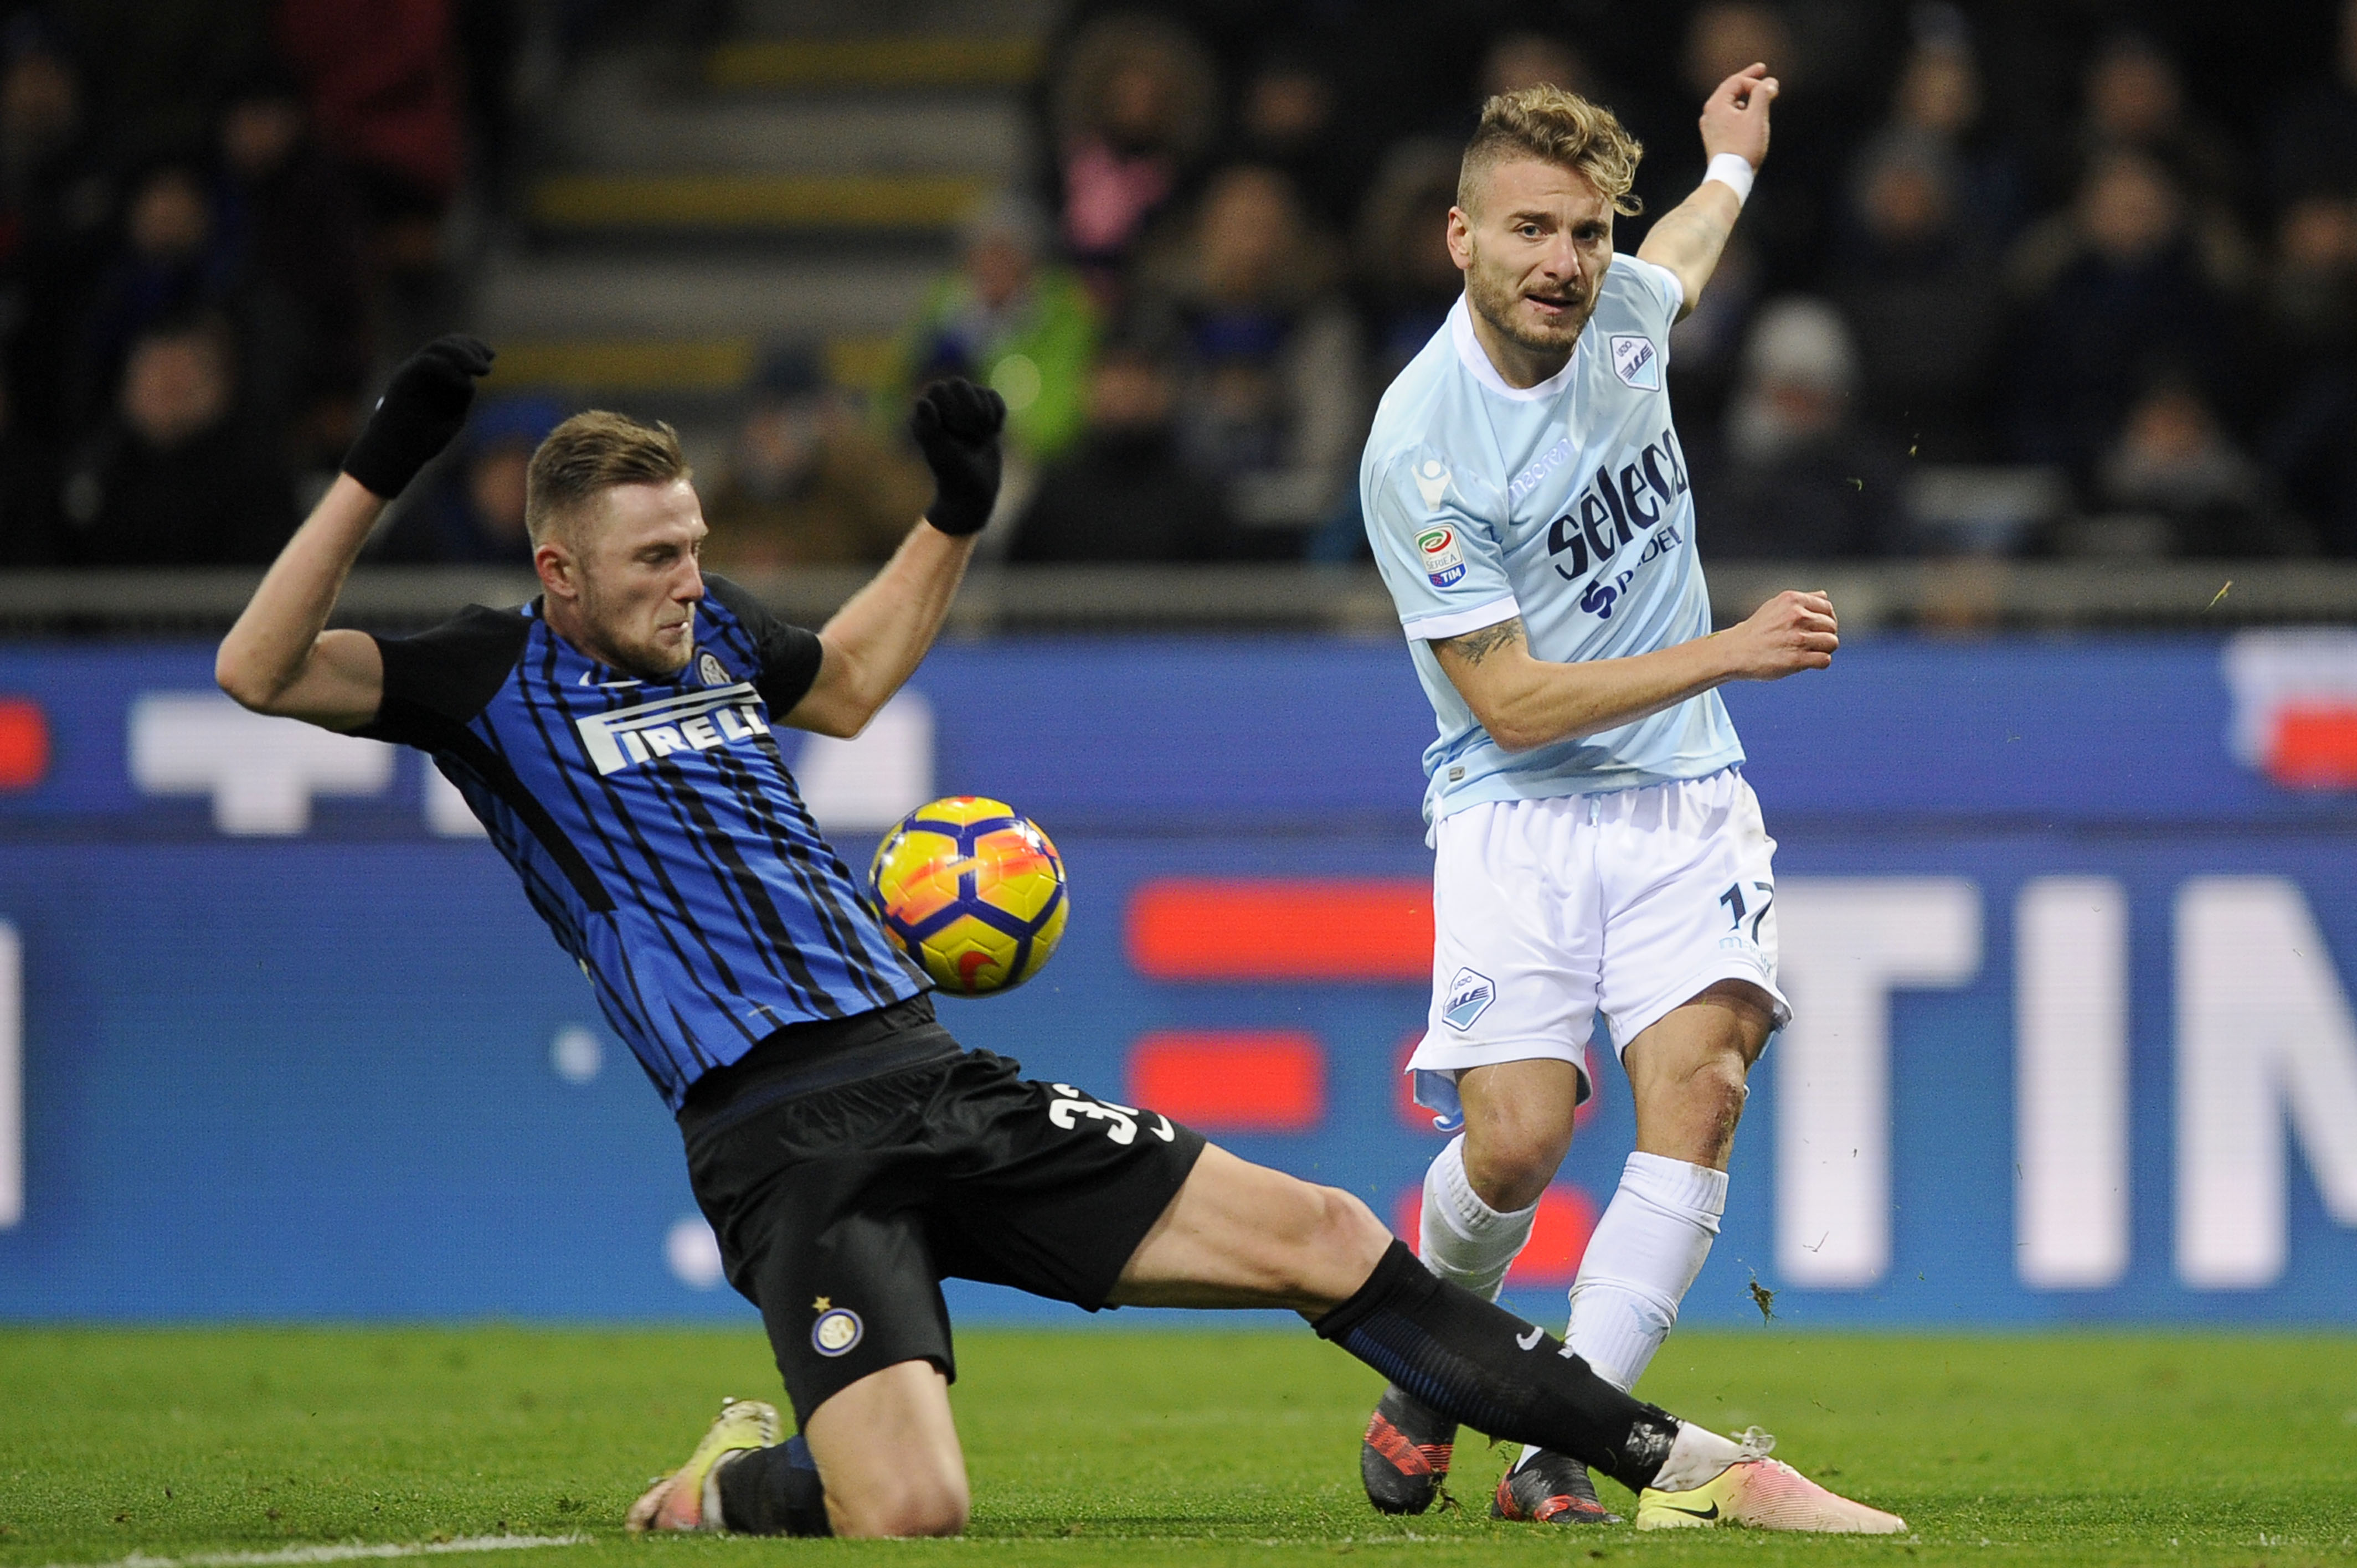 MILAN, MILANO - DECEMBER 30: Ciro Immobile of SS Lazio compete for the ball with Milan Skiniar of FC Internazionale during the serie A match between FC Internazionale and SS Lazio at Stadio Giuseppe Meazza on December 30, 2017 in Milan, Italy. (Photo by Marco Rosi/Getty Images )